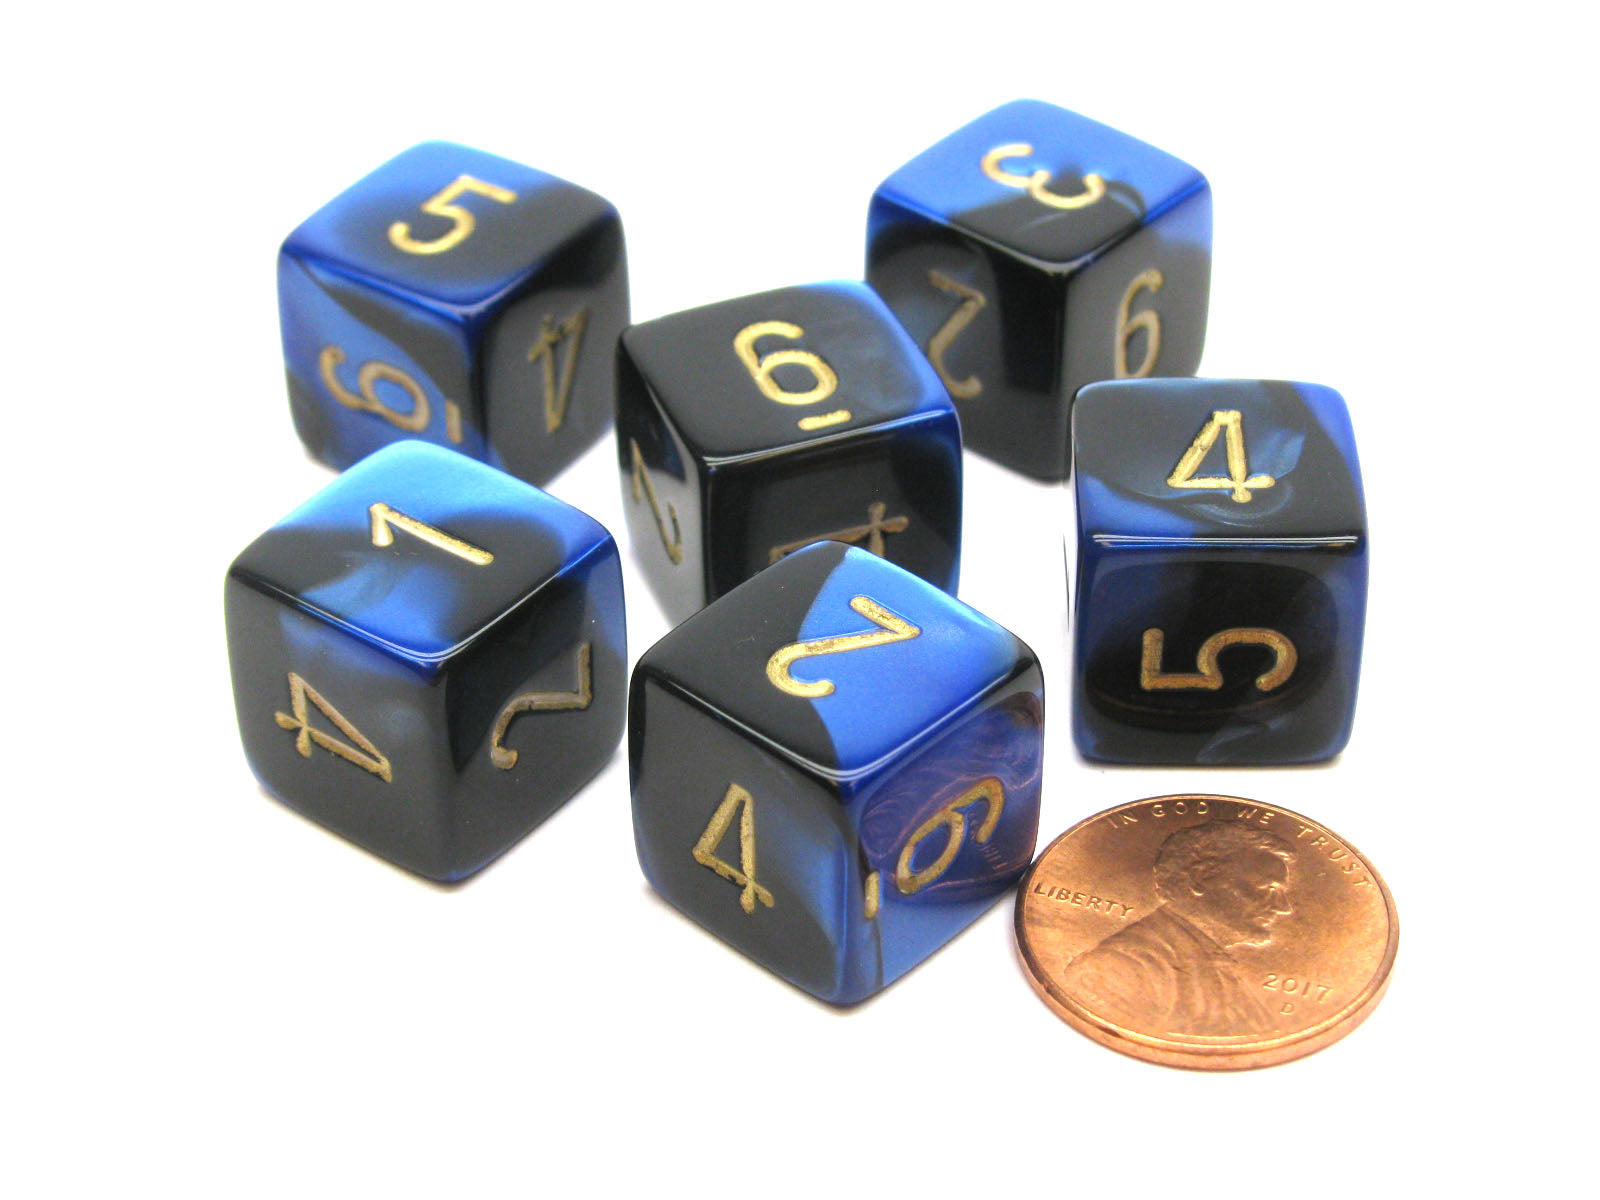 Gemini 15mm 6-Sided D6 Numbered Chessex Dice, 6 Pieces - Black-Blue with Gold